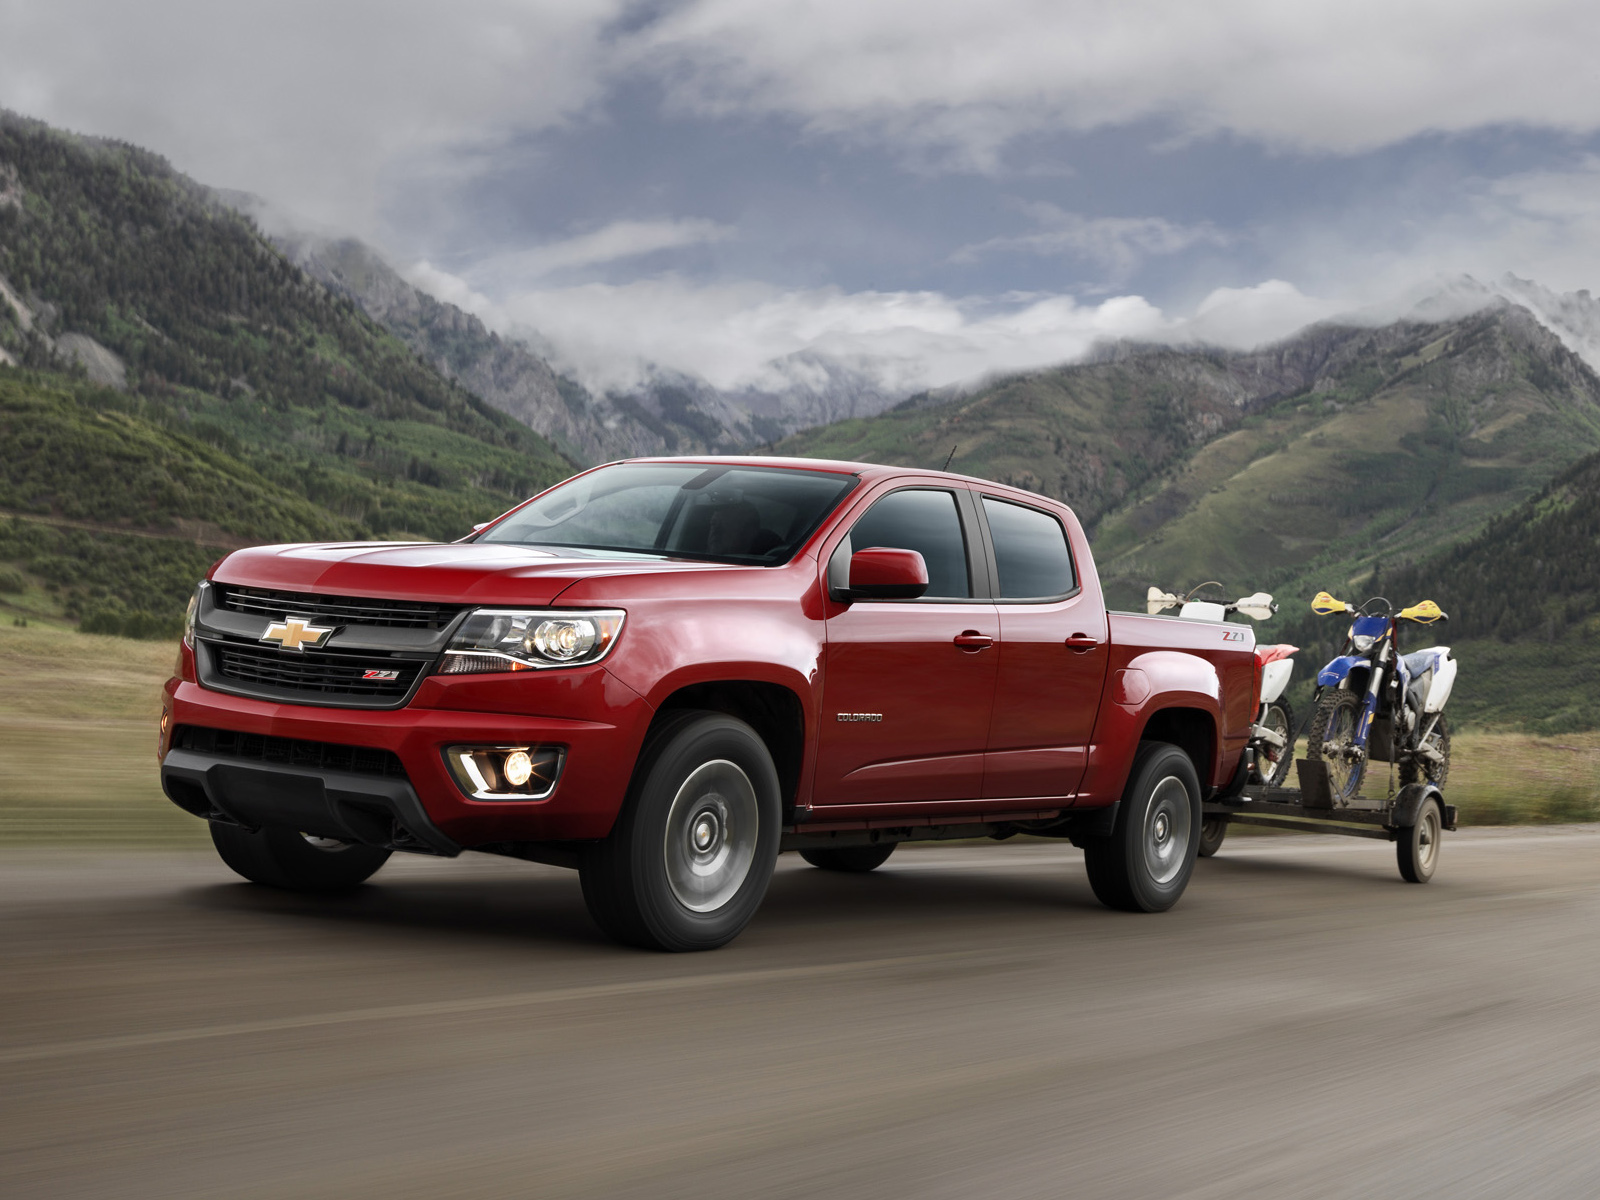 chevy z71 wallpapers - photo #12